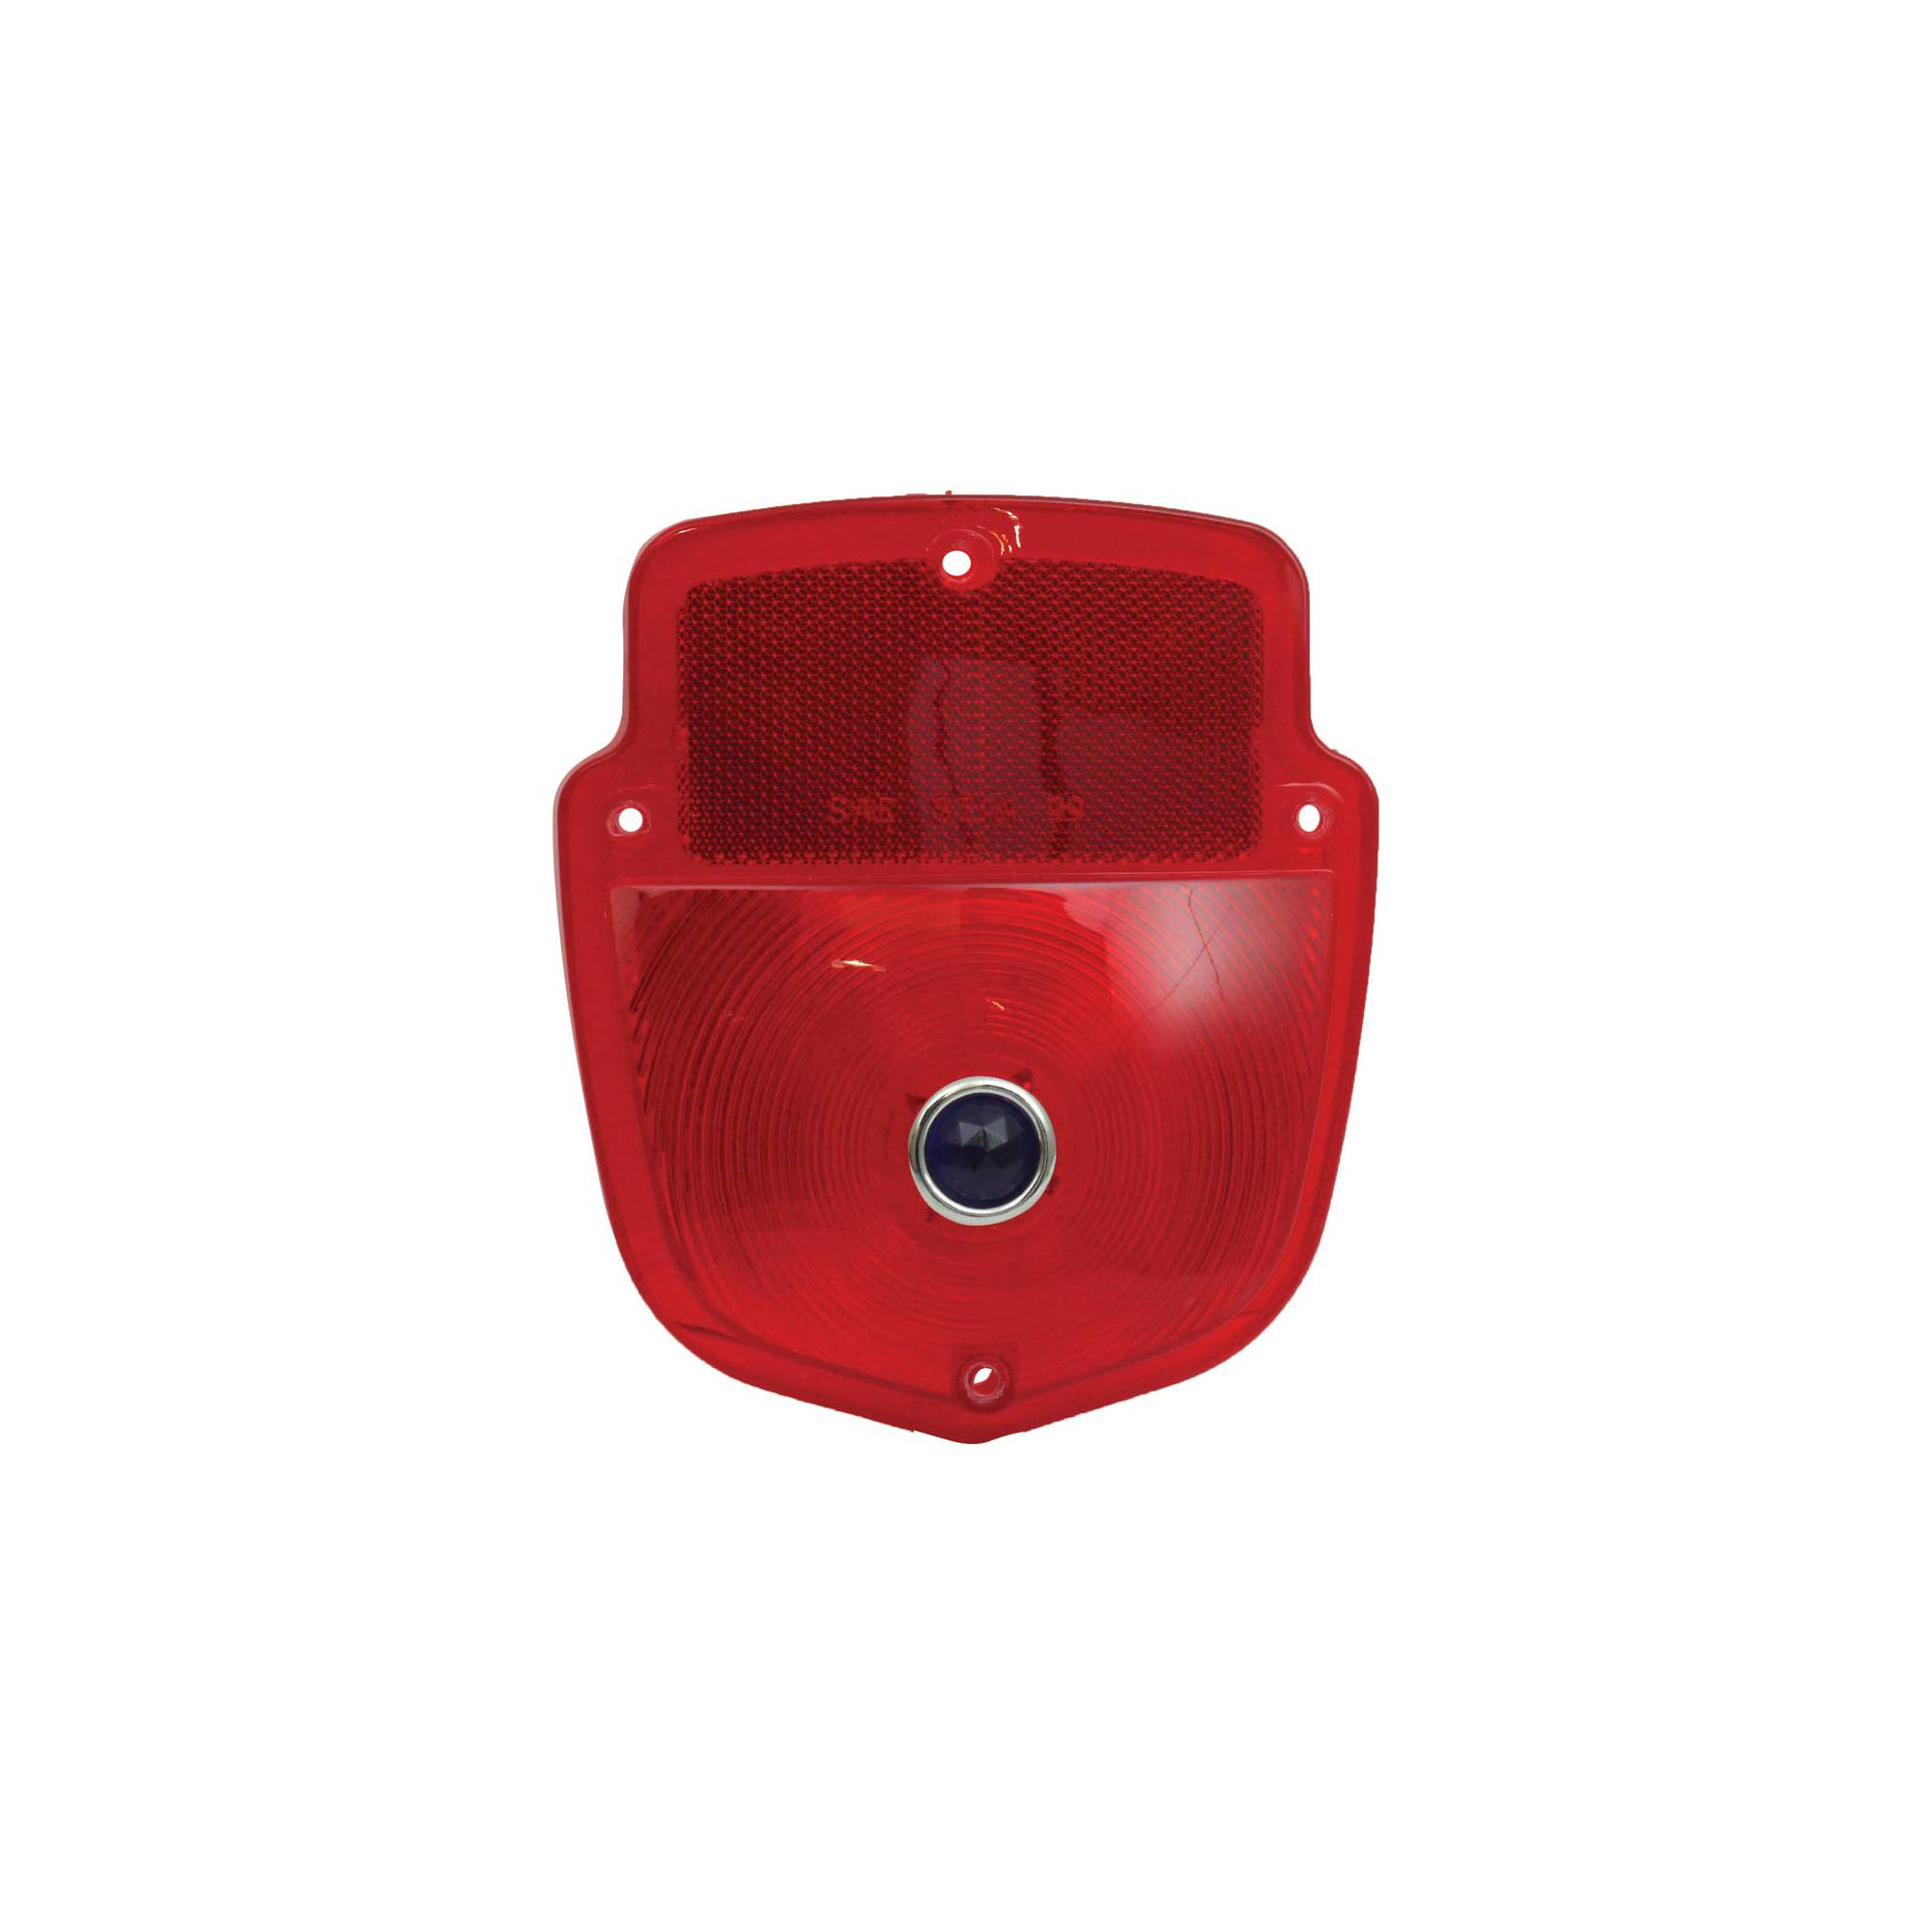 Red GlassLens With Blue Dot Lens Shield Type Flareside Pickup MACs Auto Parts 48-31709 Pickup Truck Tail Light Lens